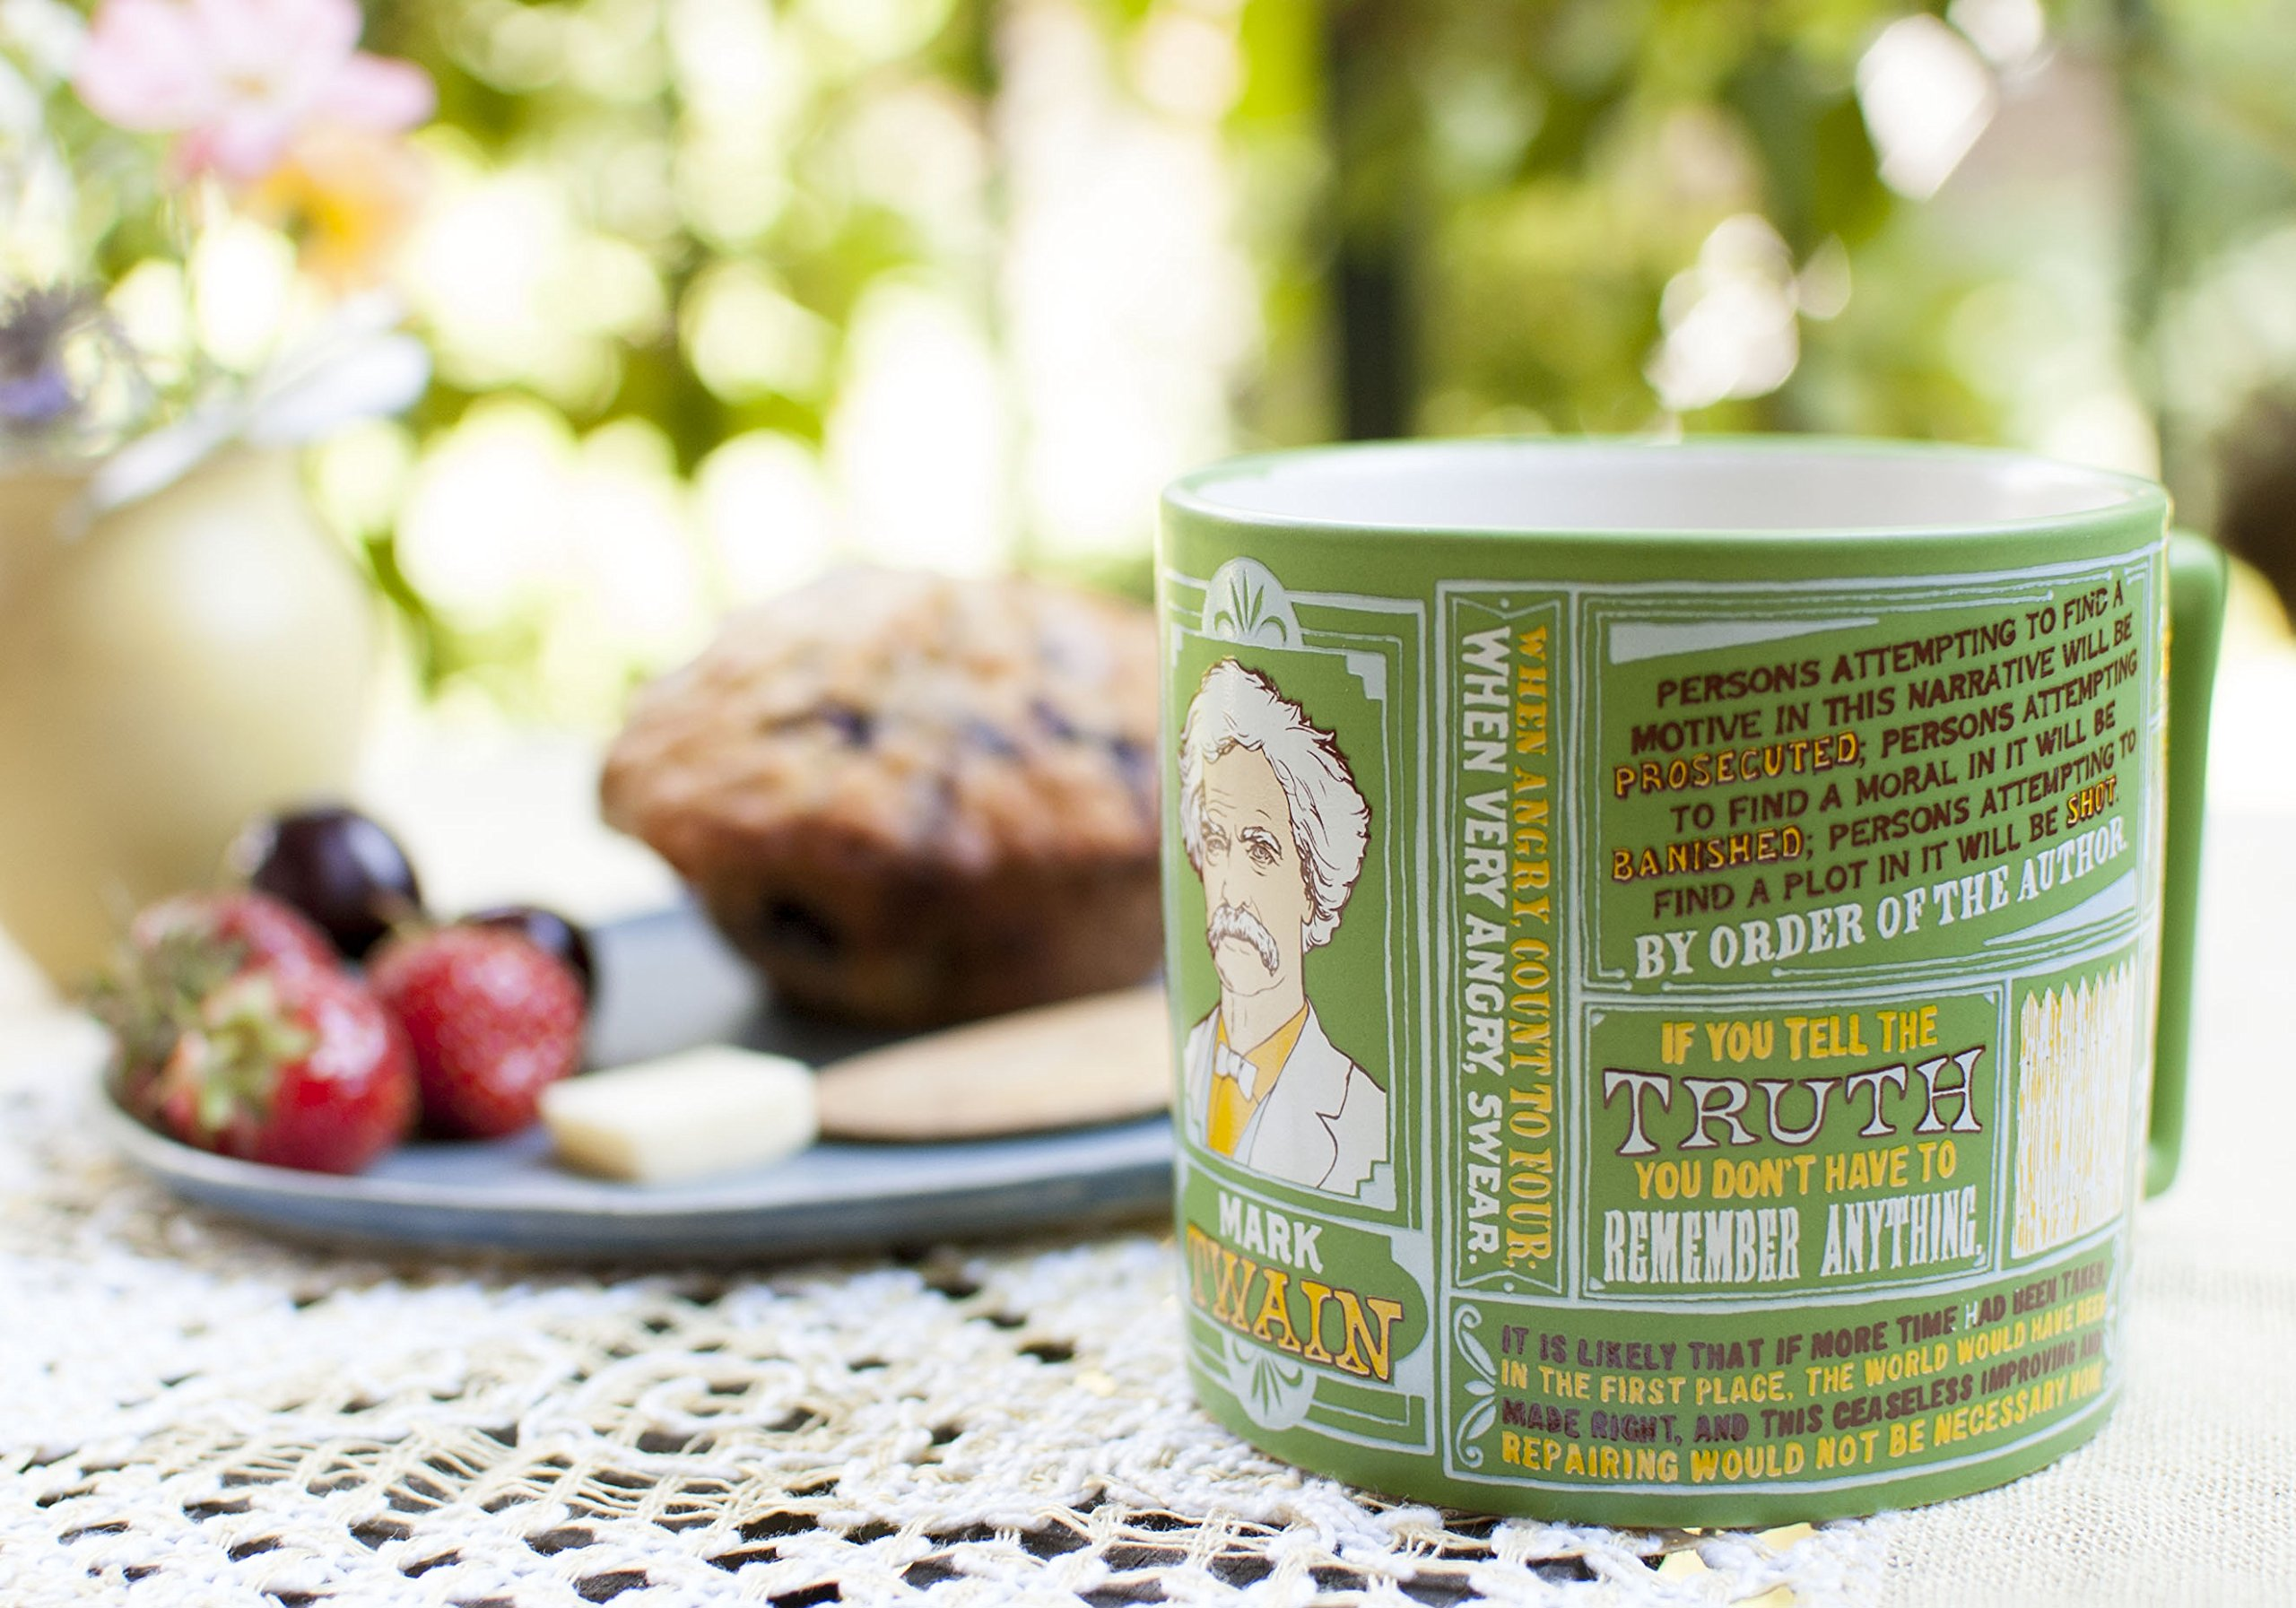 Mark Twain Coffee Mug - Twain's Most Famous Quotes and Depictions - Comes in a Fun Gift Box by The Unemployed Philosophers Guild (Image #5)